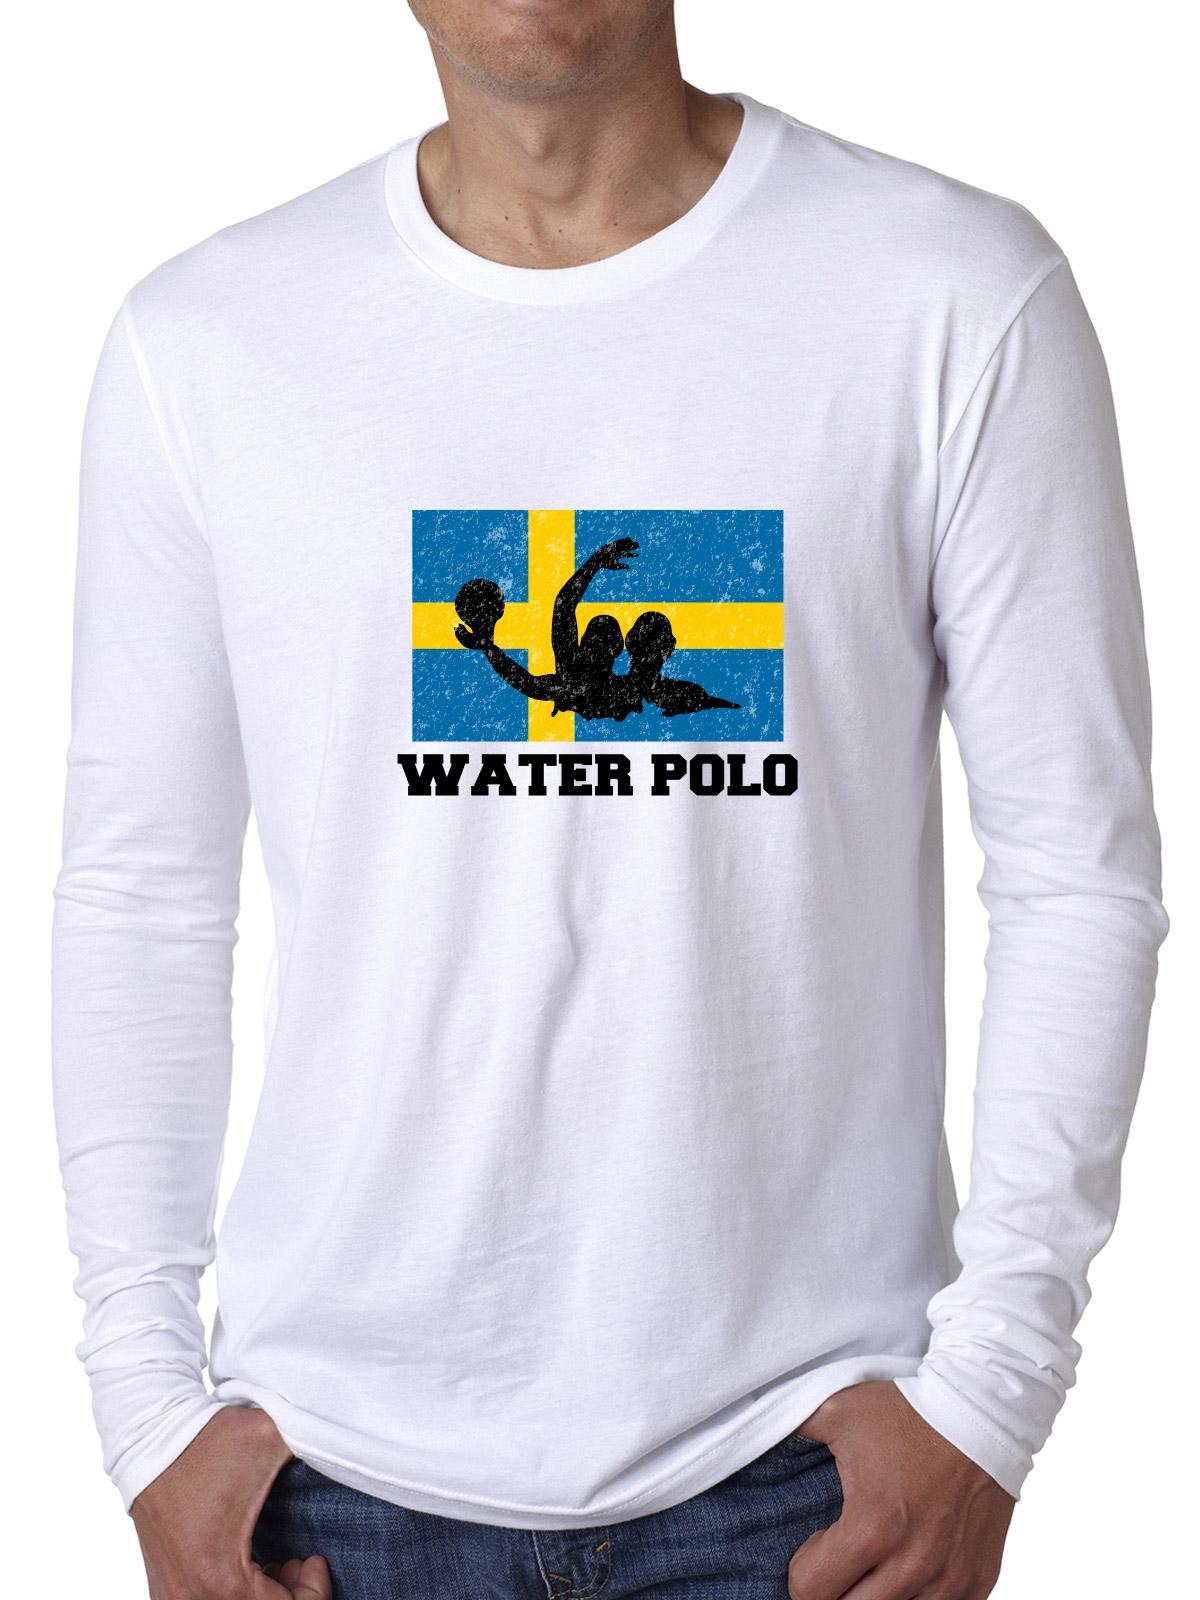 Sweden Olympic Water Polo Flag Silhouette Men's Long Sleeve T-Shirt by Hollywood Thread